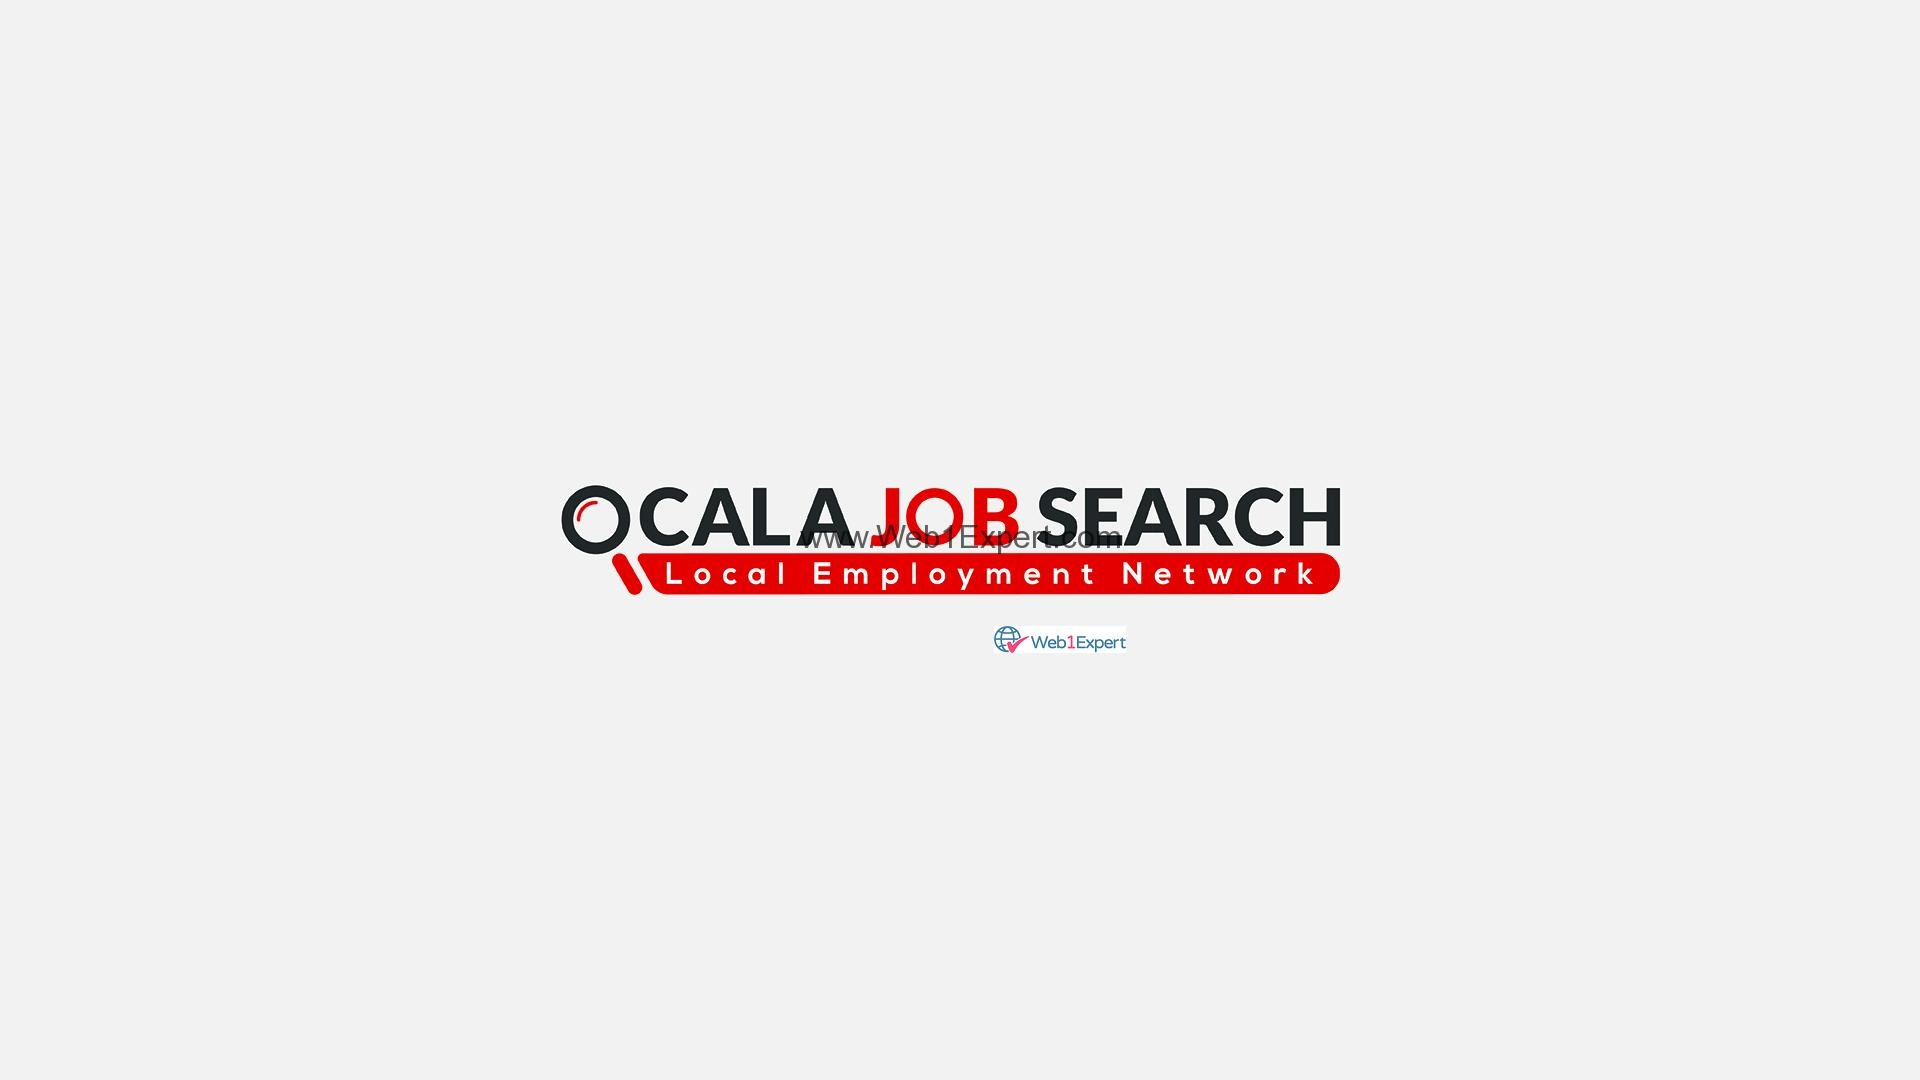 Ocala_Job_Search_Logo